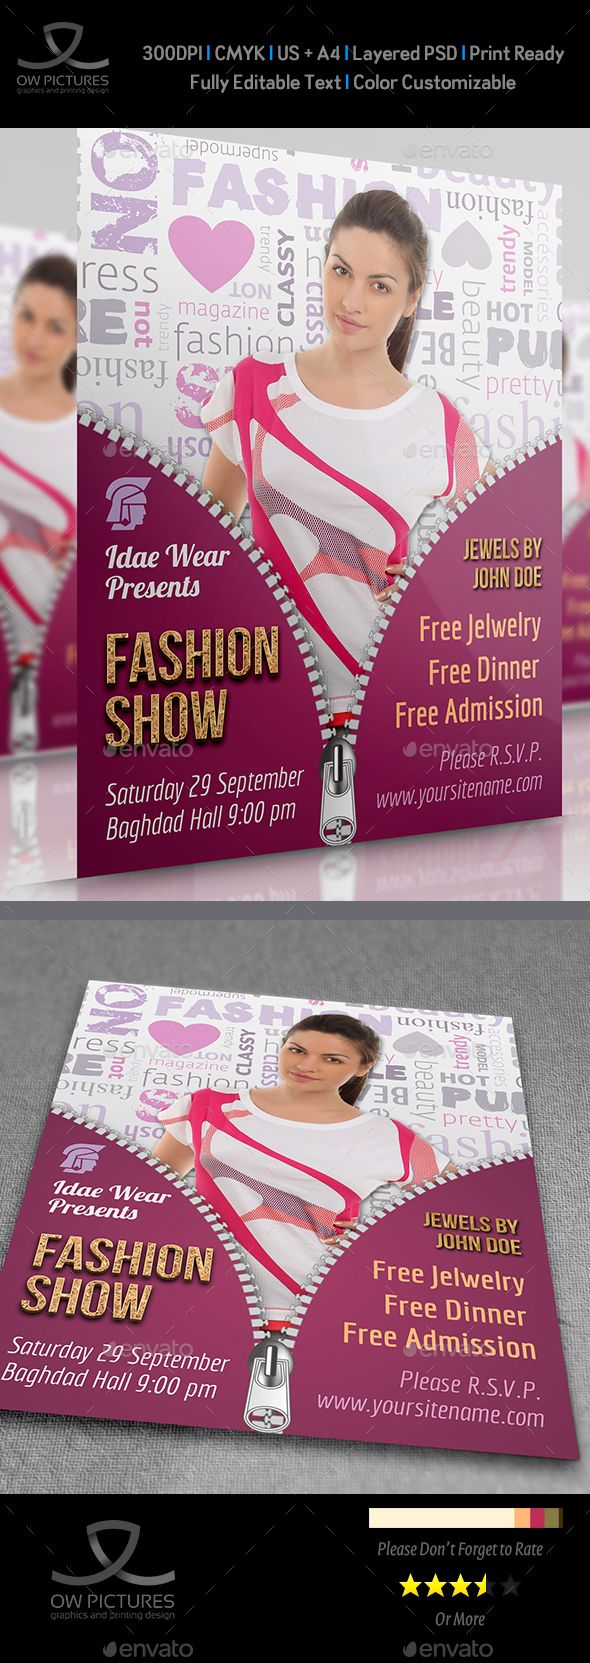 Fashion Flyer Font Logo Flyer Template And Fonts